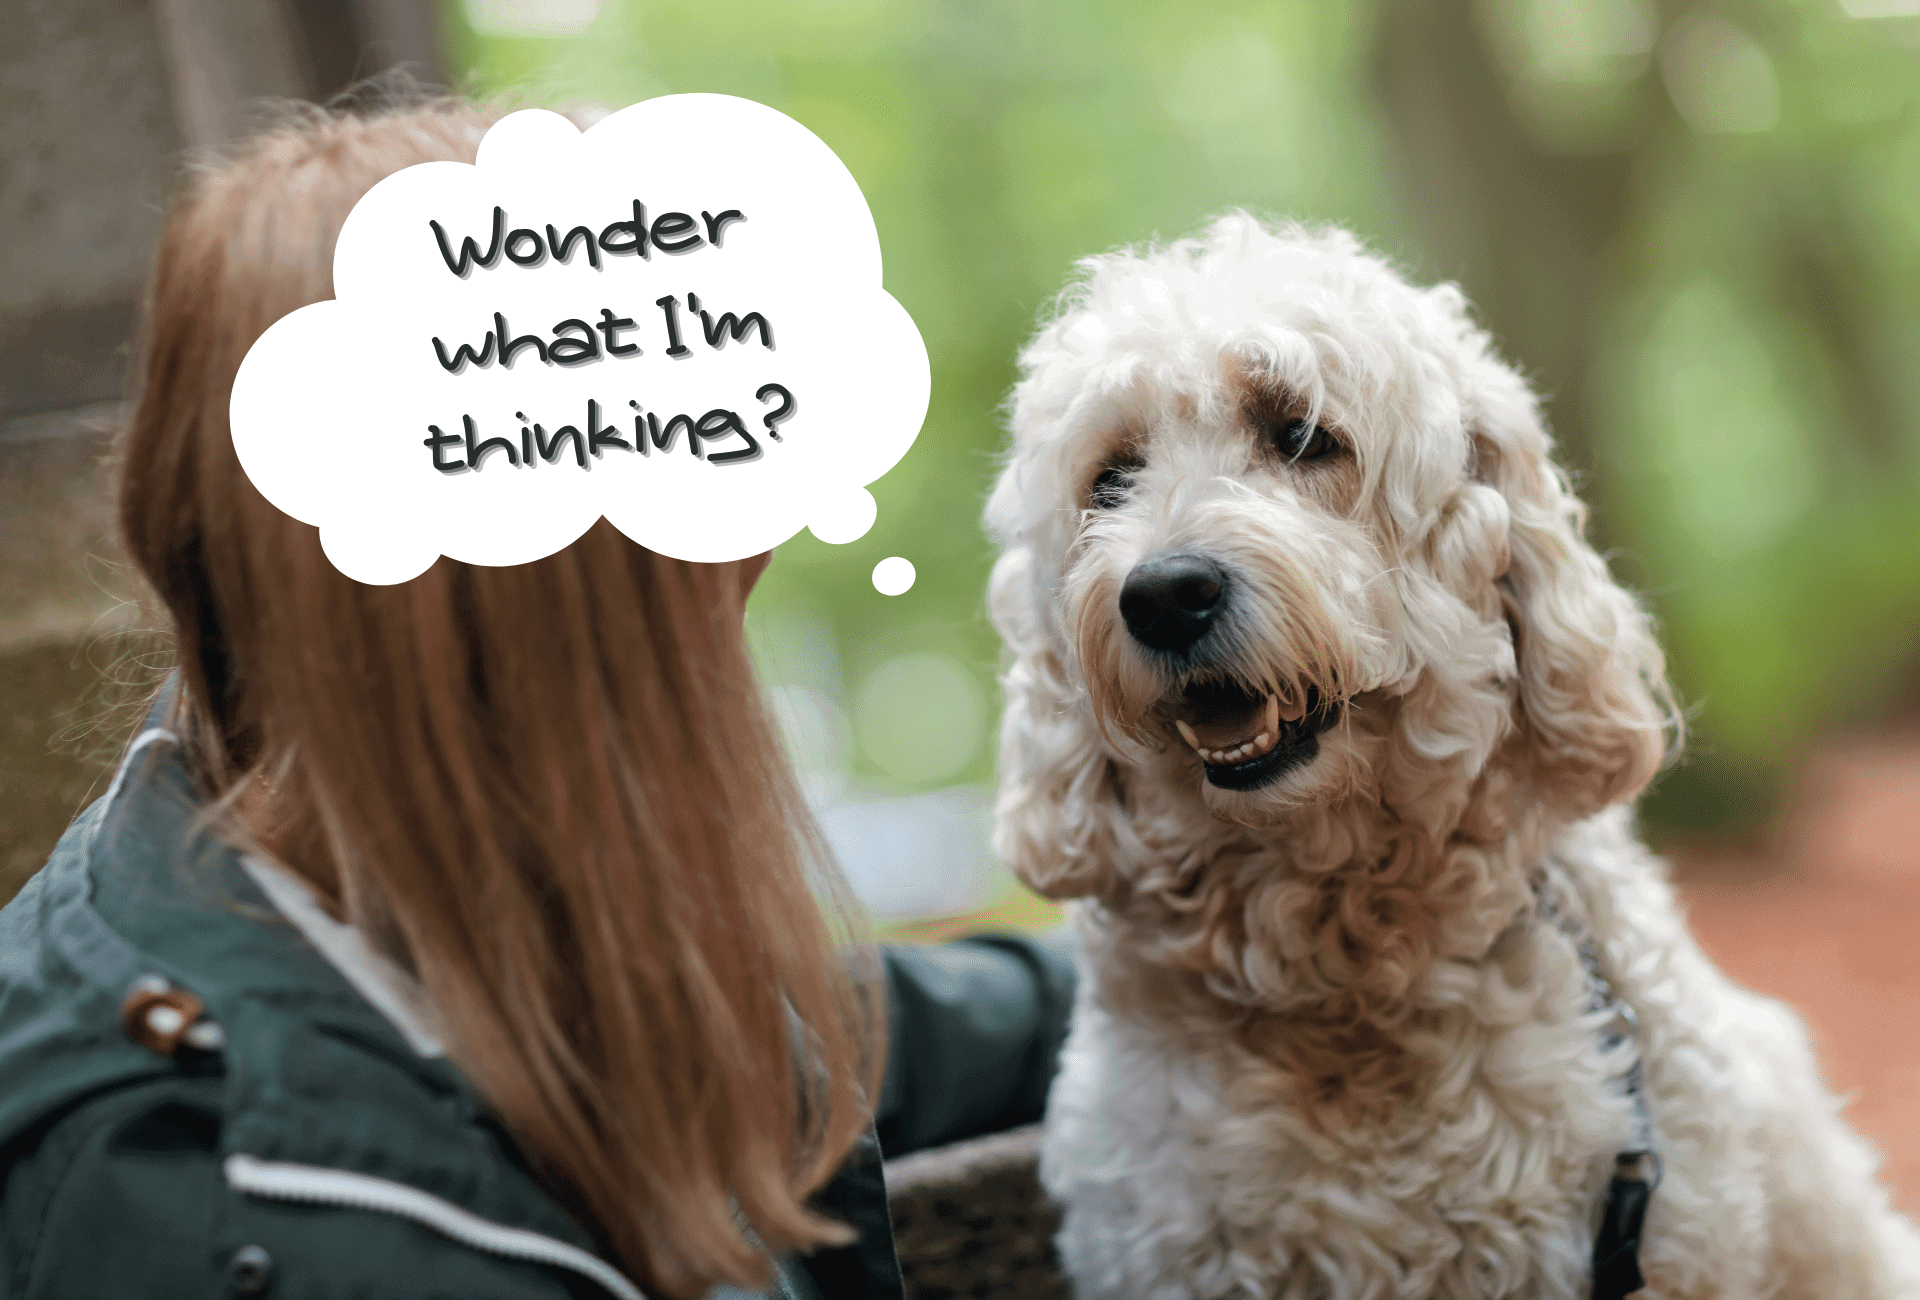 Dog sits in front of owner with speech bubble communicating the dog's thoughts